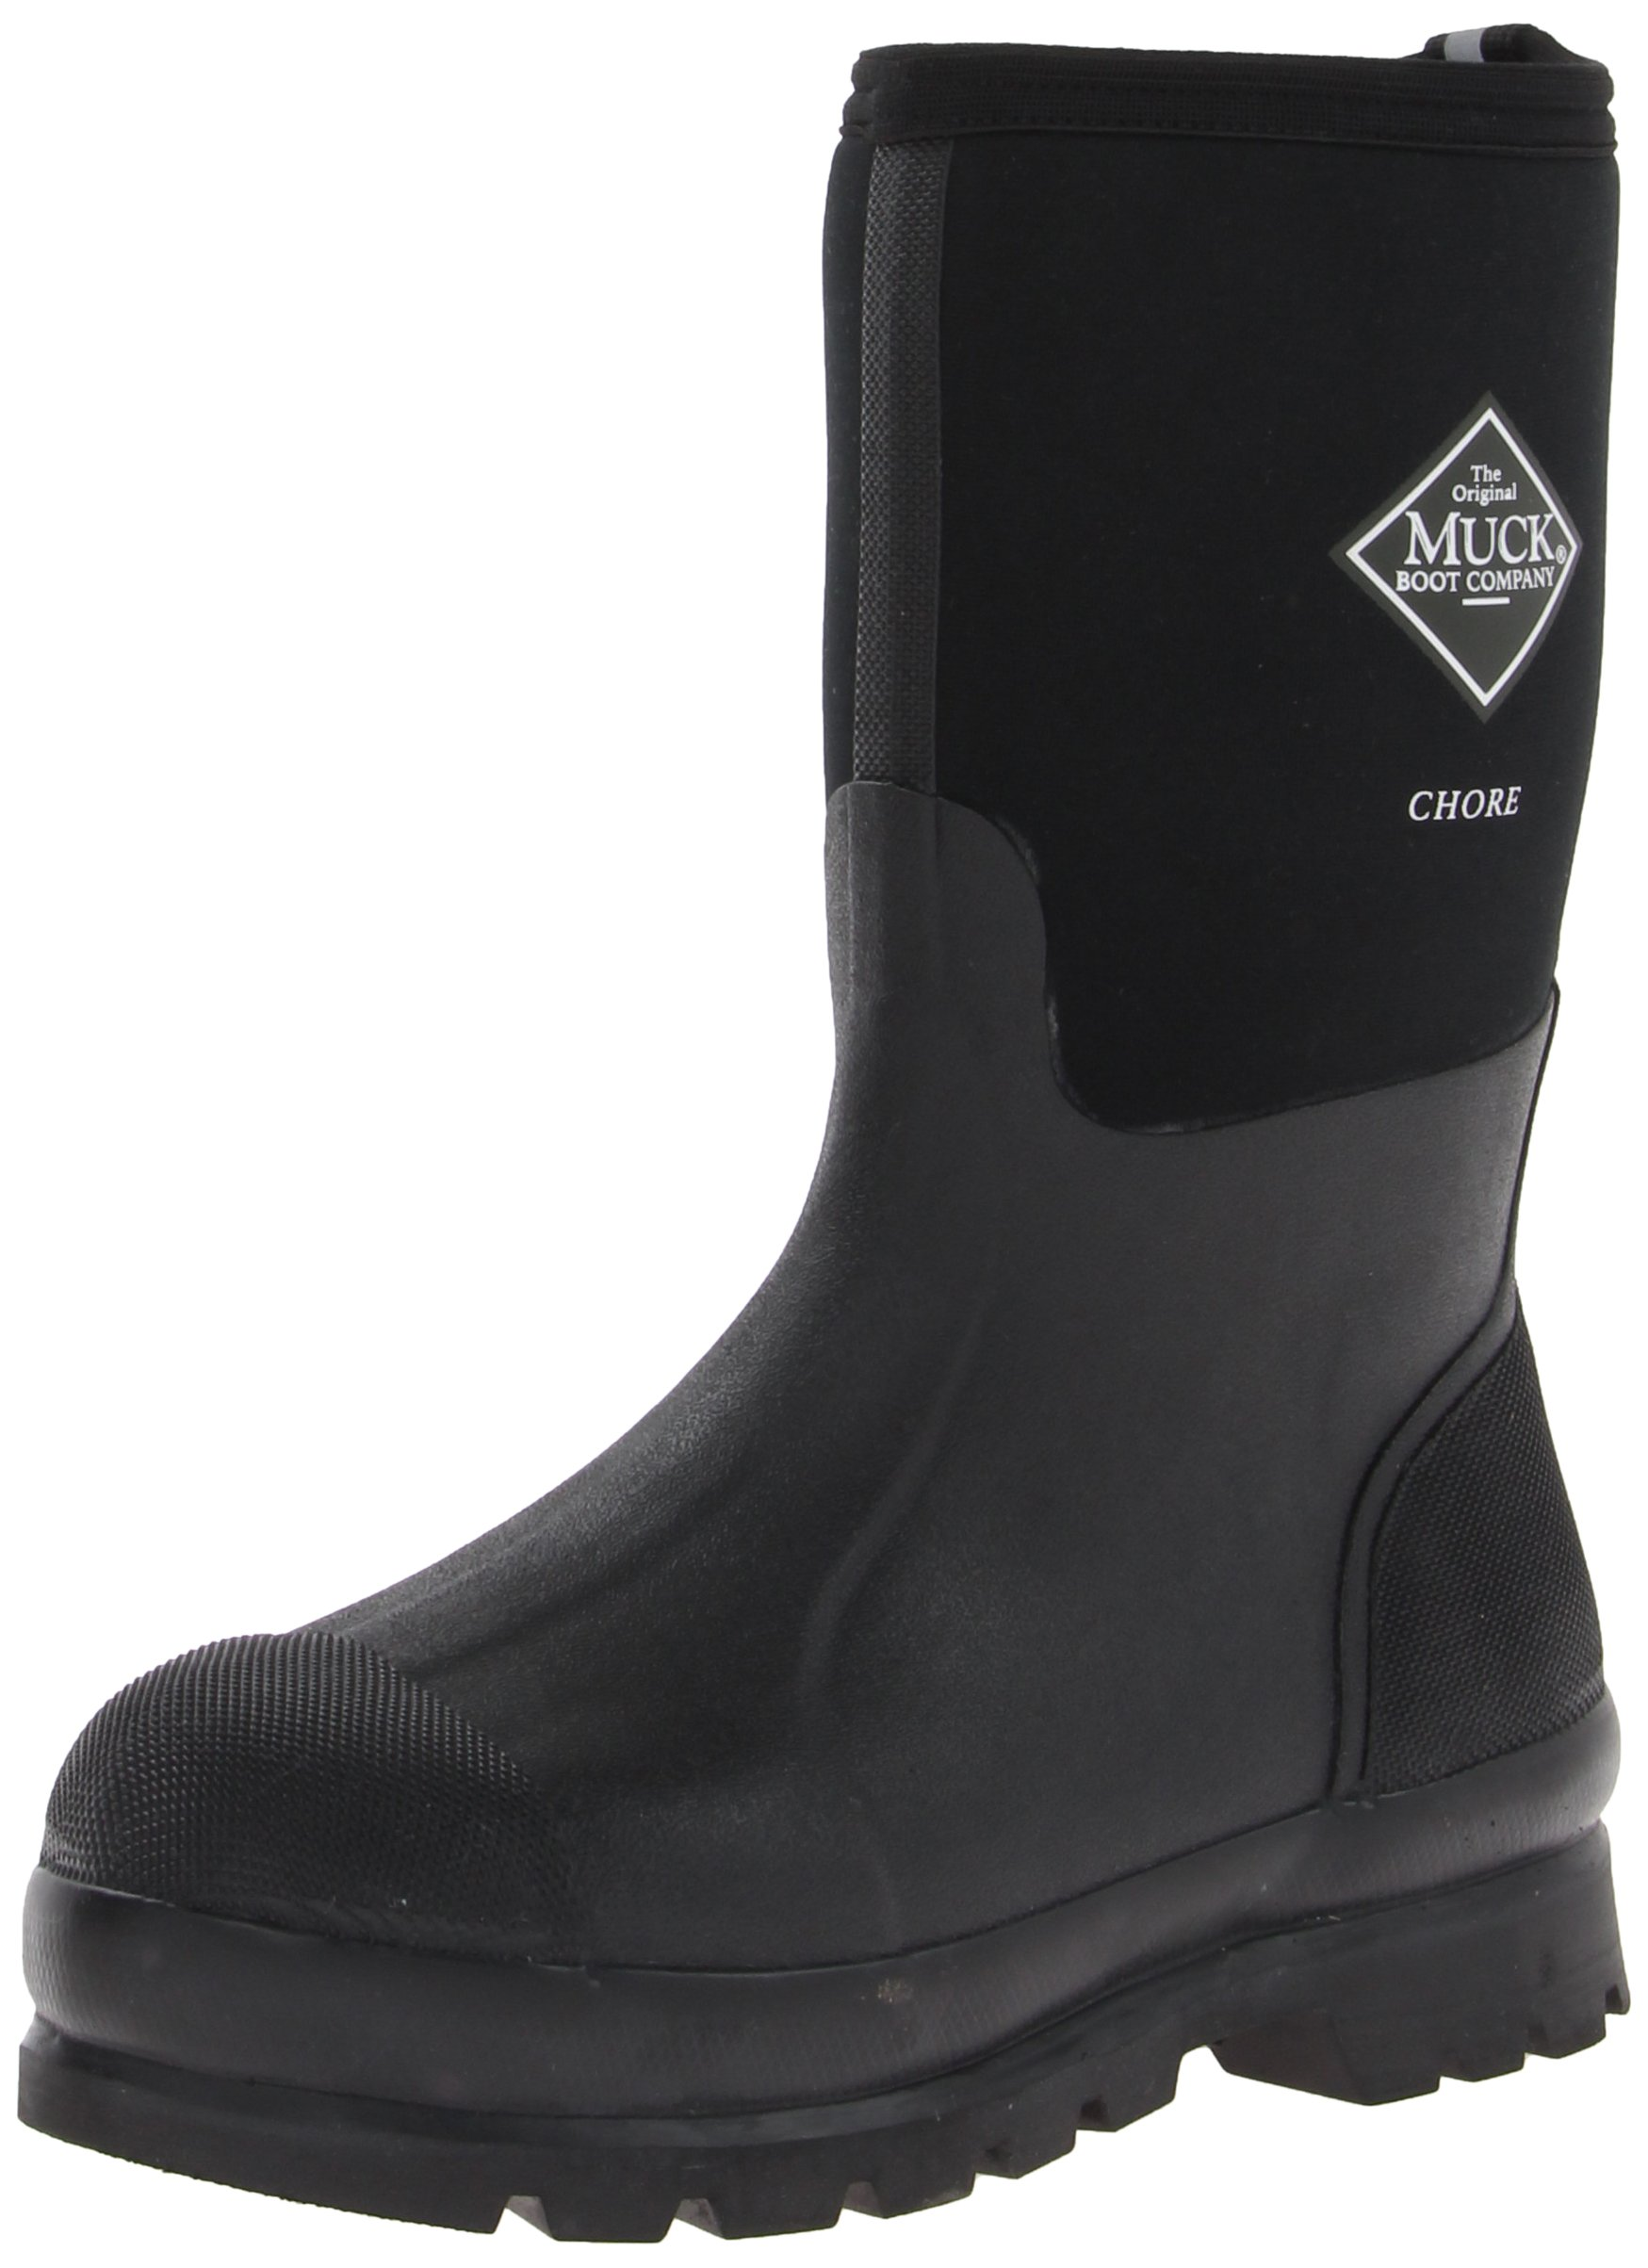 The Original MuckBoots Adult Chore Mid Boot,Black,Men's 7 M/Women's 8 M by Muck Boot